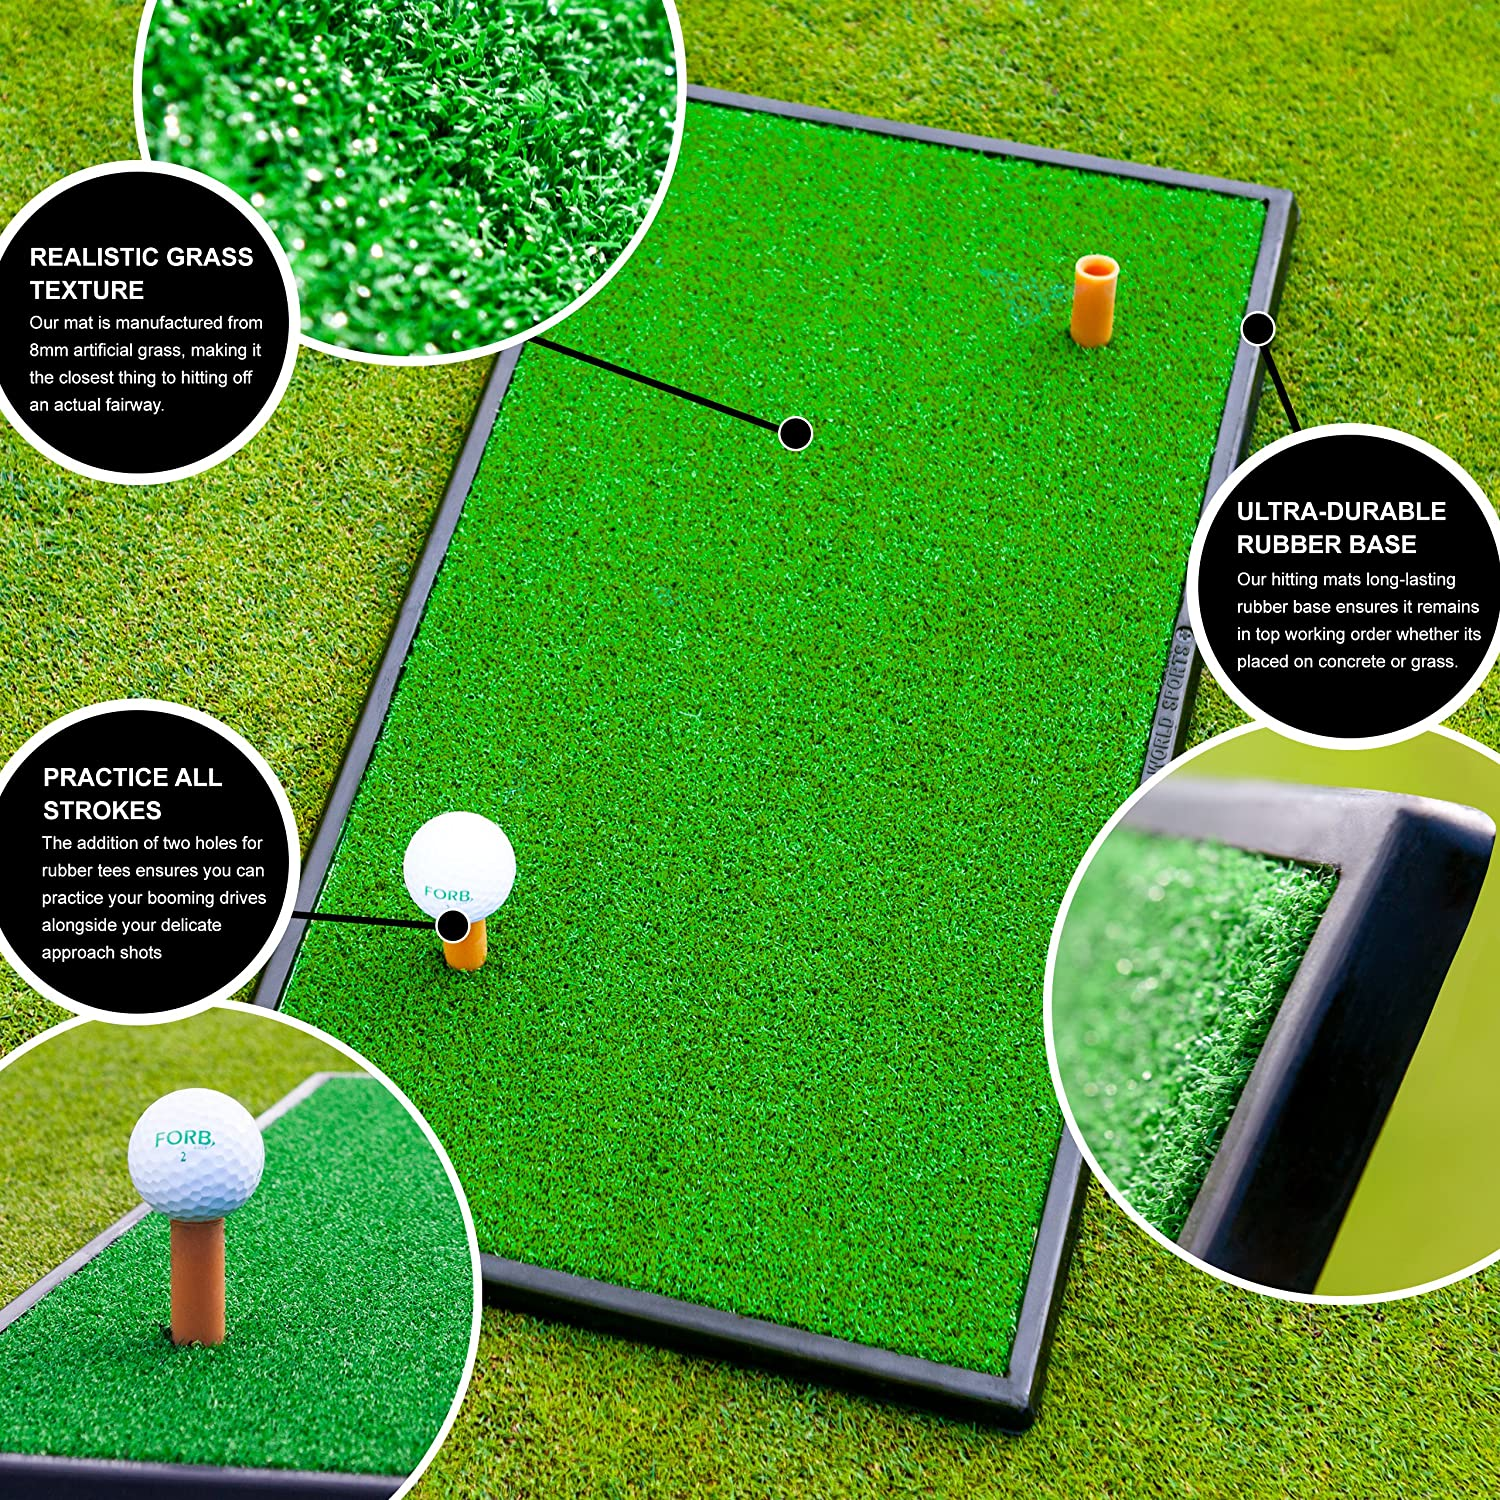 golf range tips practice best online mats mat additional free understanding